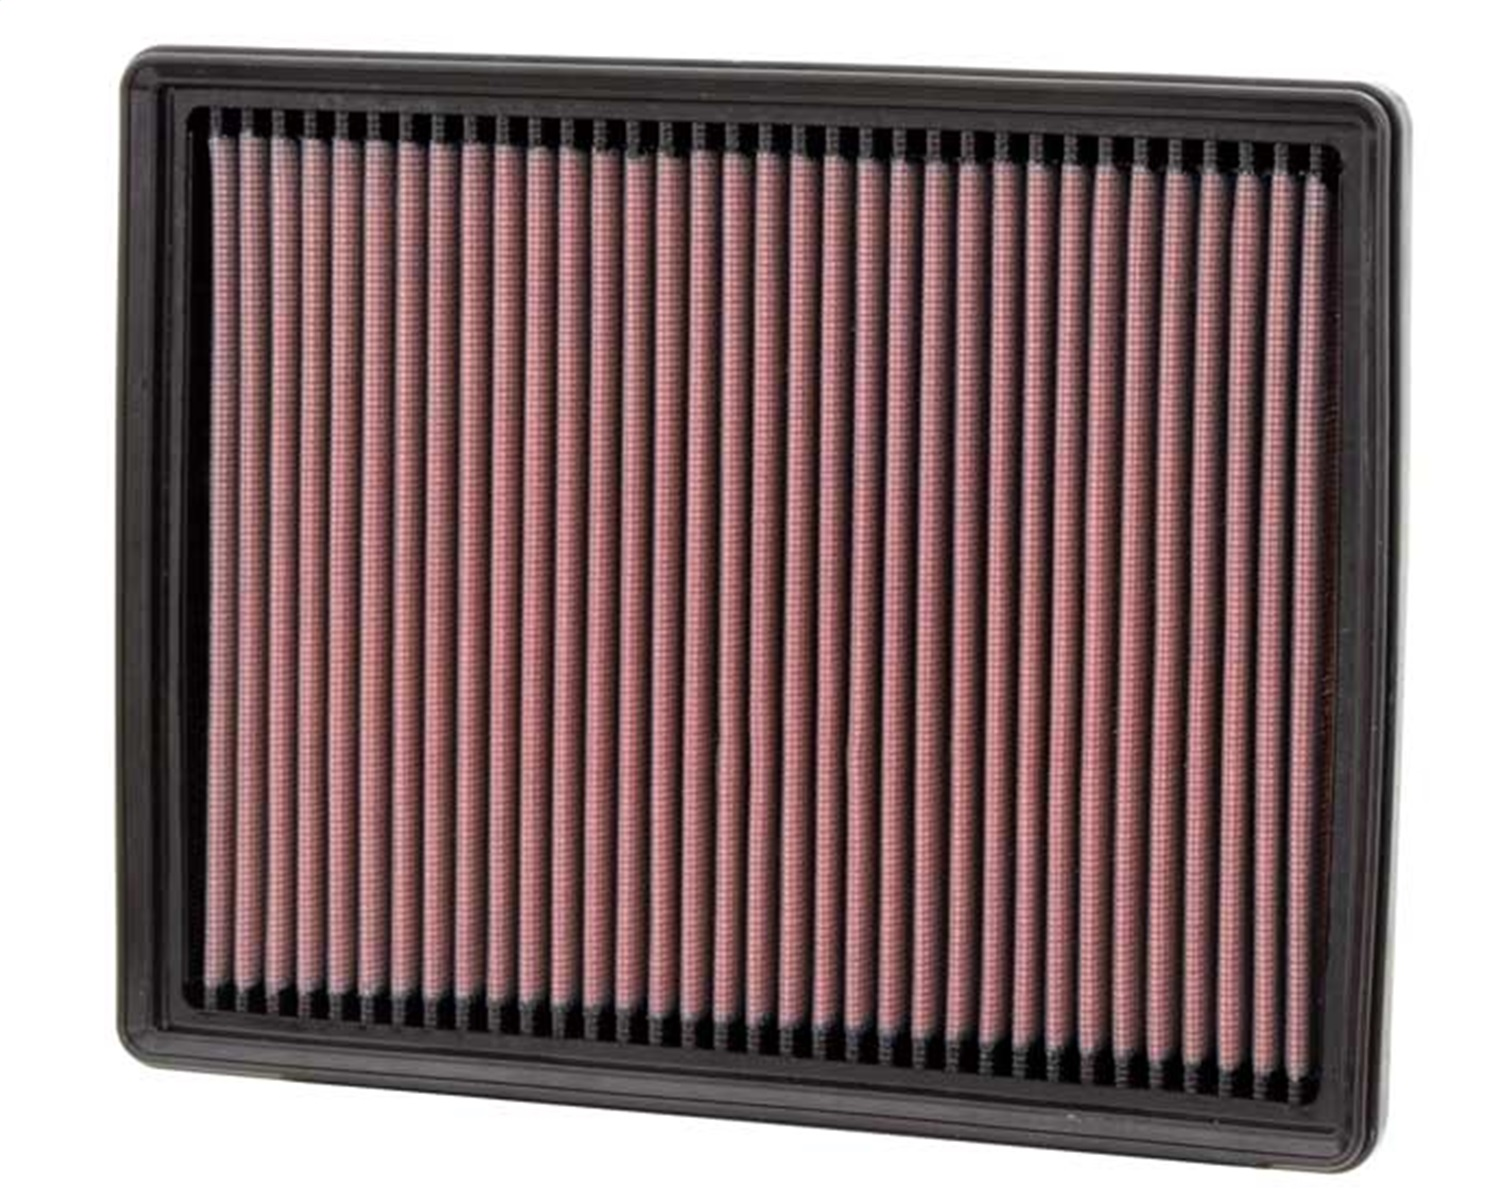 K&N Filters 33-2934 Air Filter Fits 06-11 Optima Rondo 33-2934